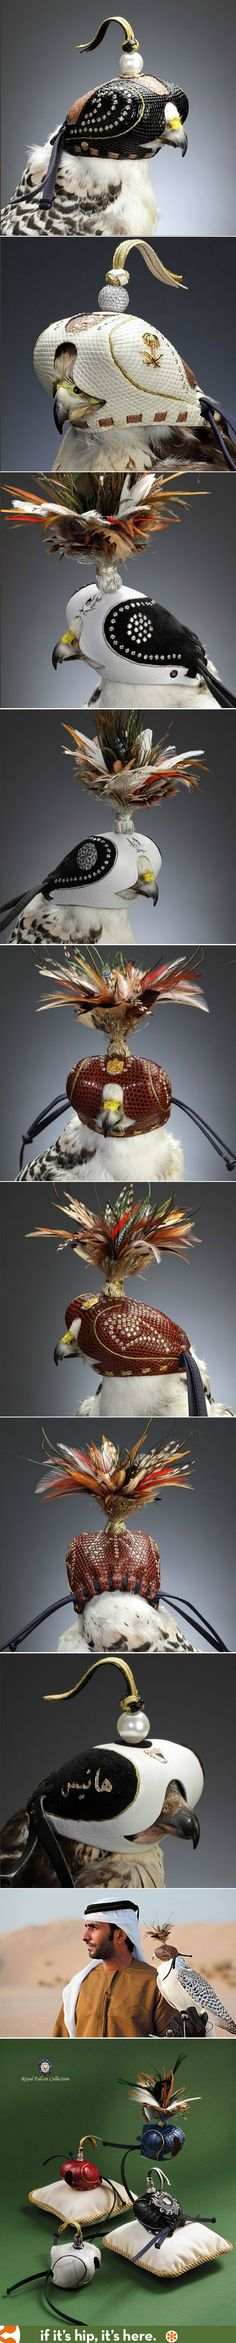 Stunning diamond-studded hoods for falconry. Wow.